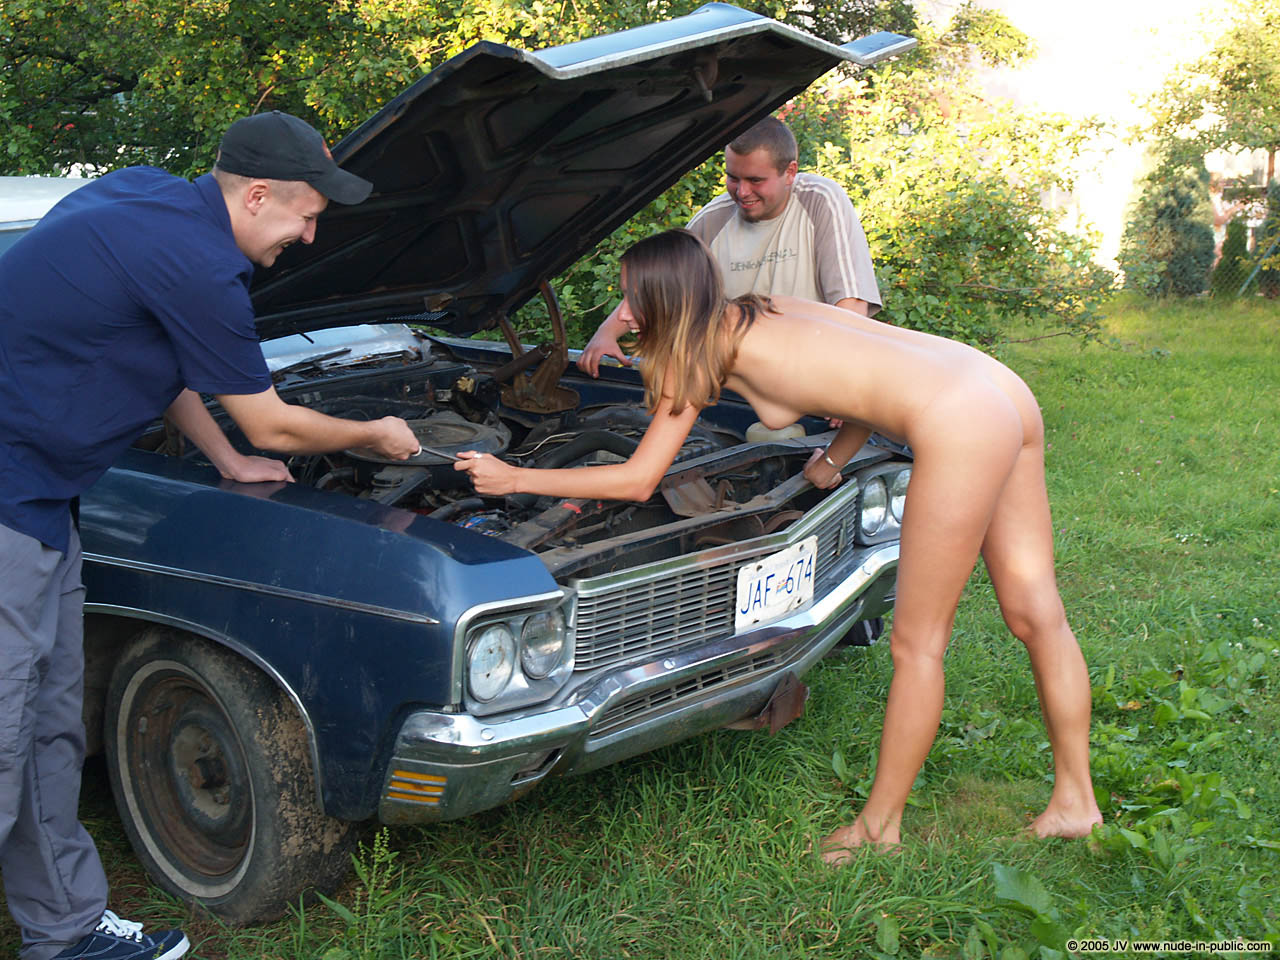 veronika-e-junkyard-cars-mechanic-nude-in-public-31